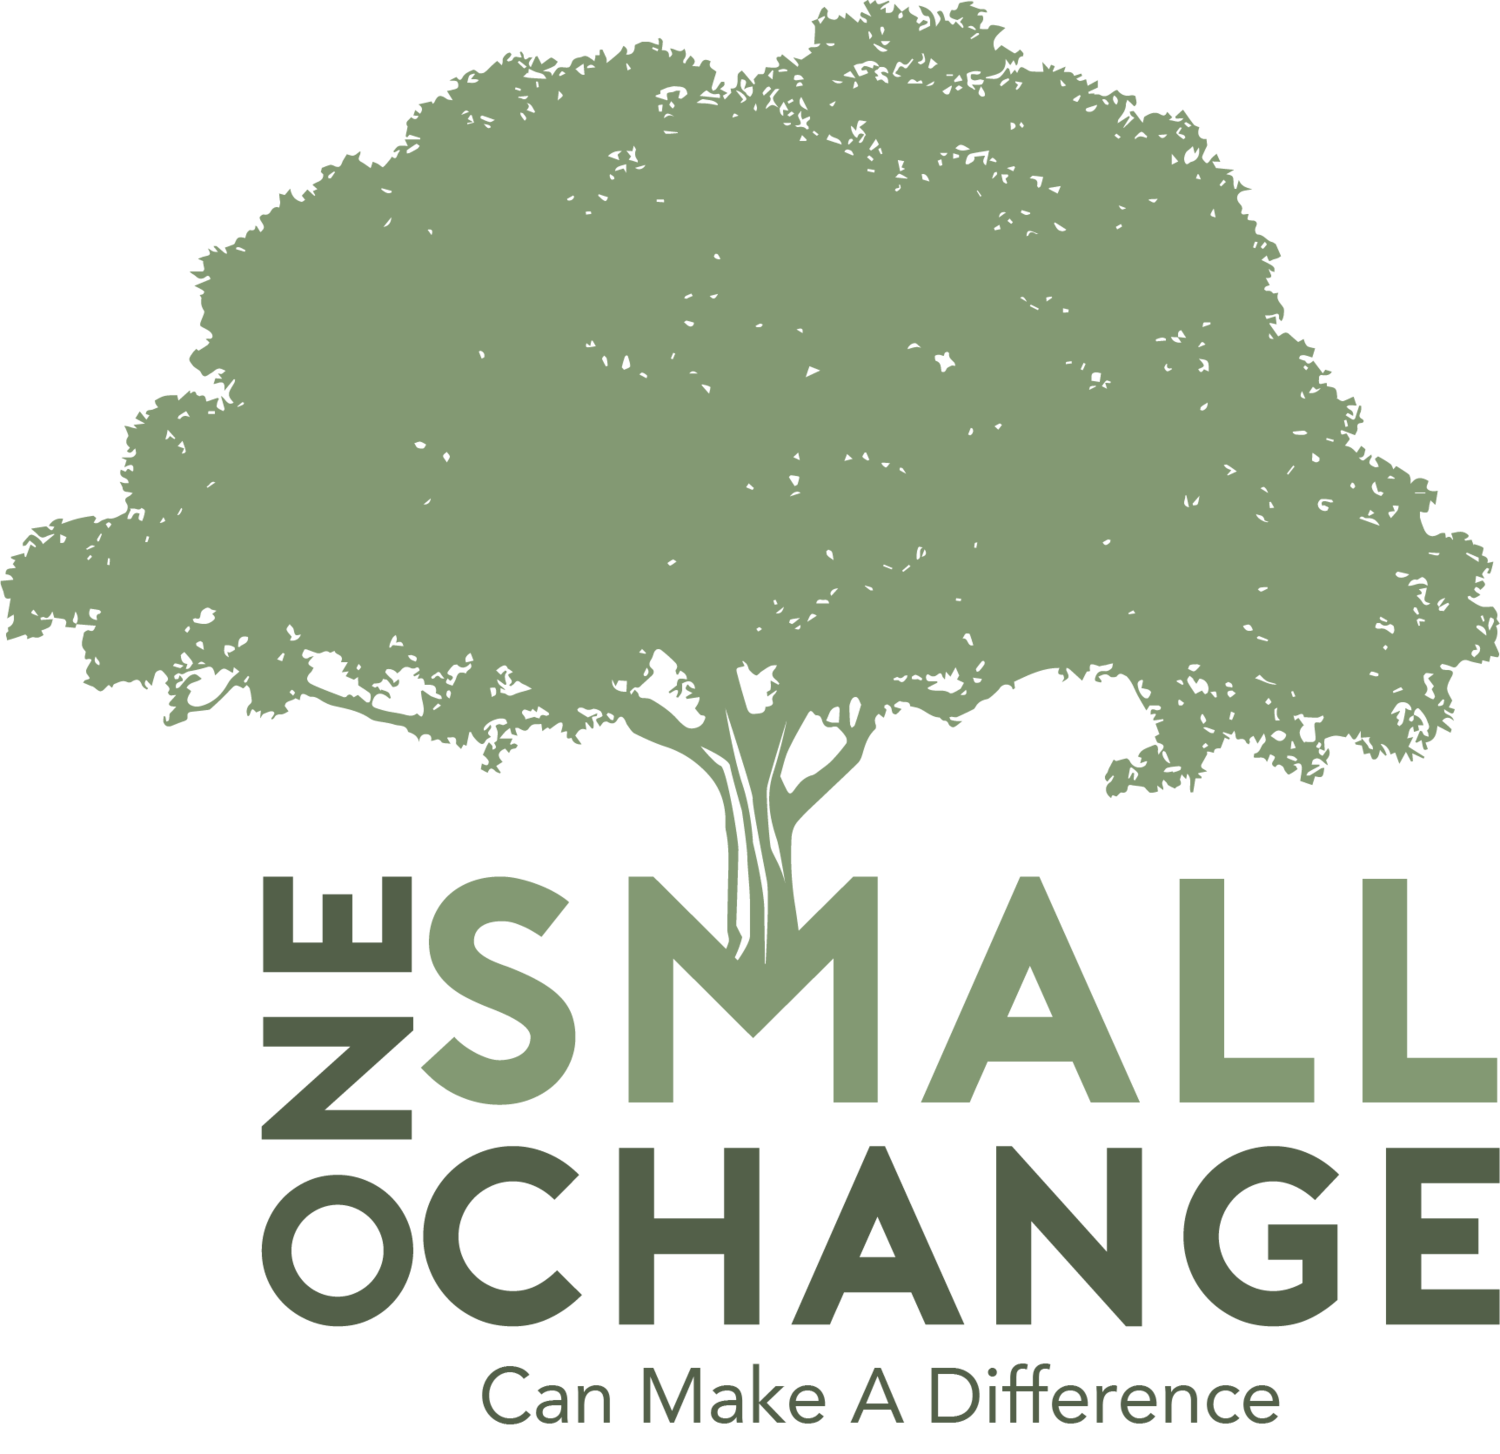 One Small Change Inc.